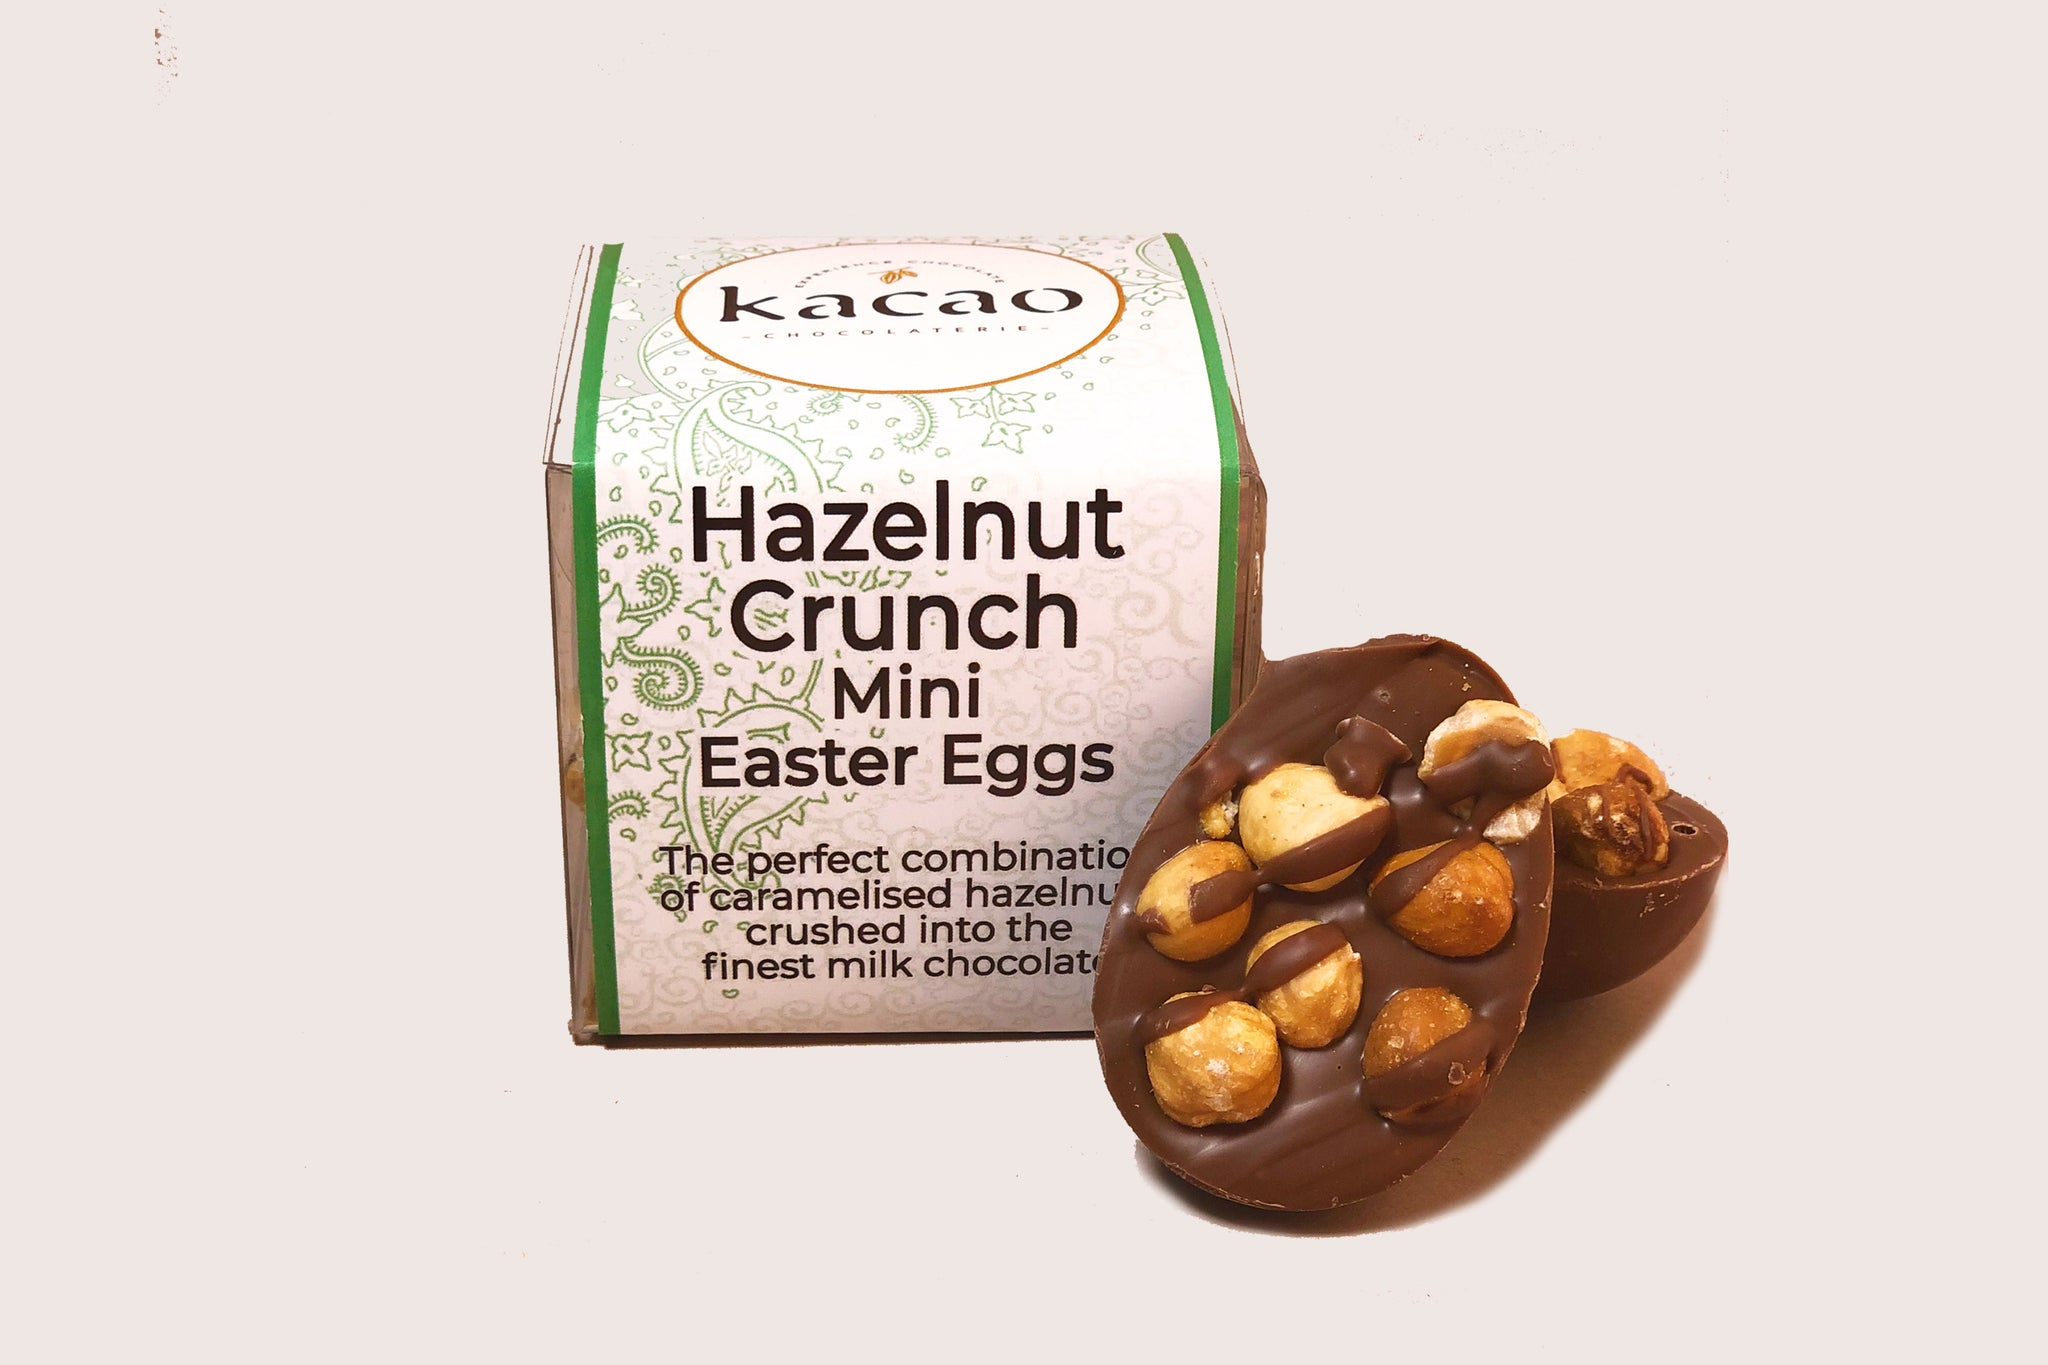 Hazelnut Crunch Mini Eggs